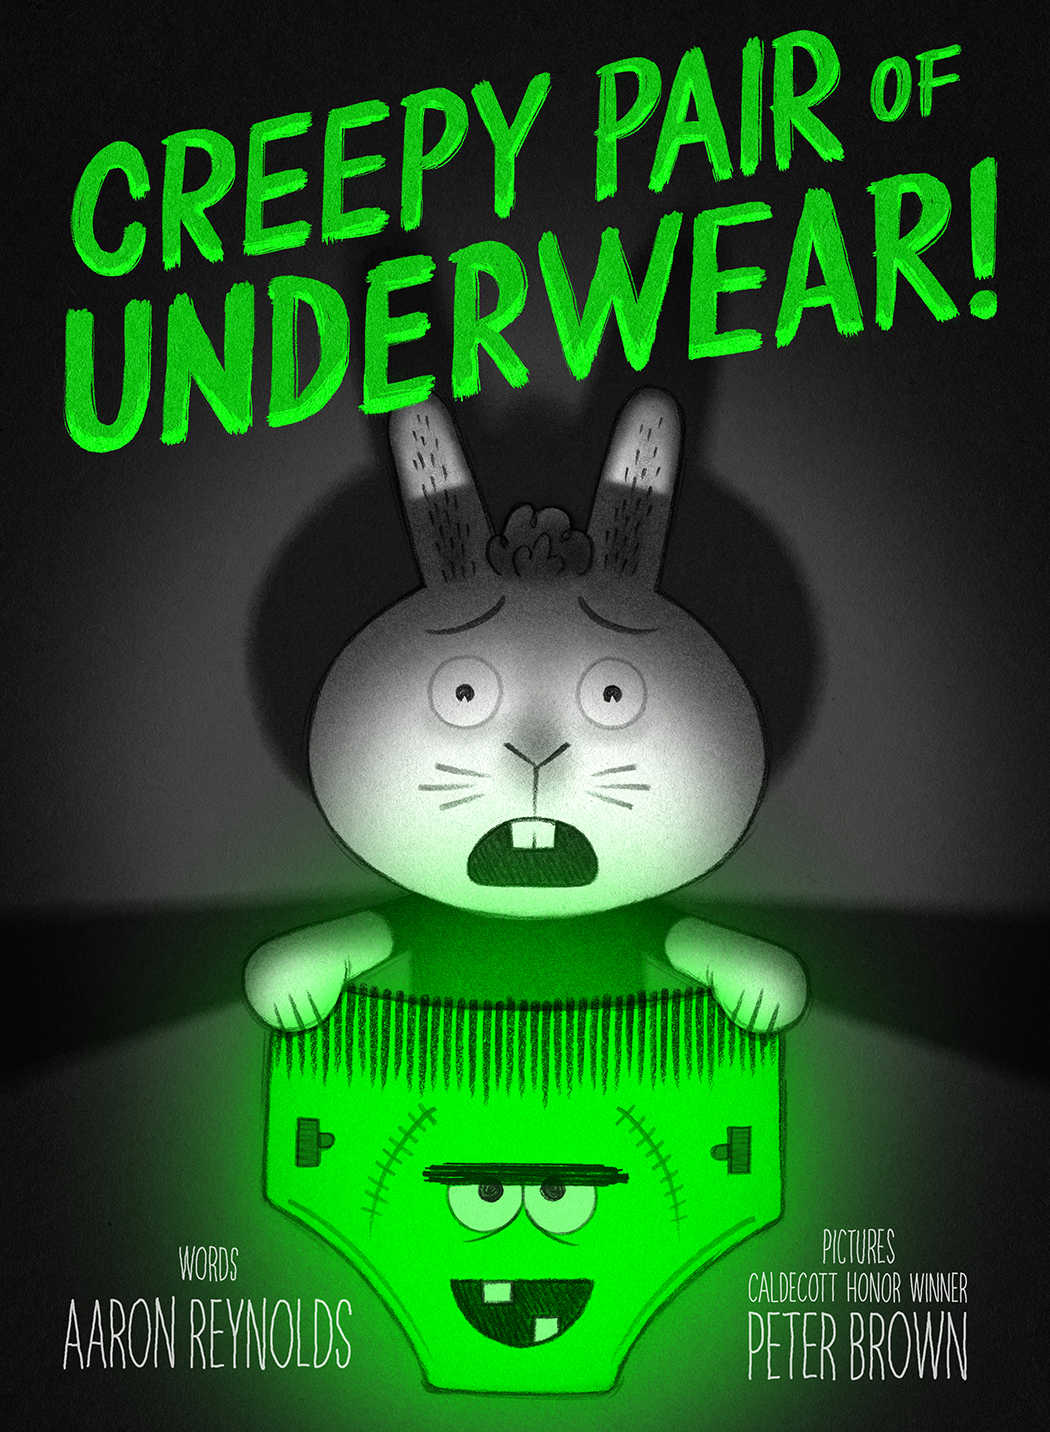 Brown, Peter 2017_08 - A CREEPY PAIR OF UNDERWEAR - PB - RLM PR.jpg